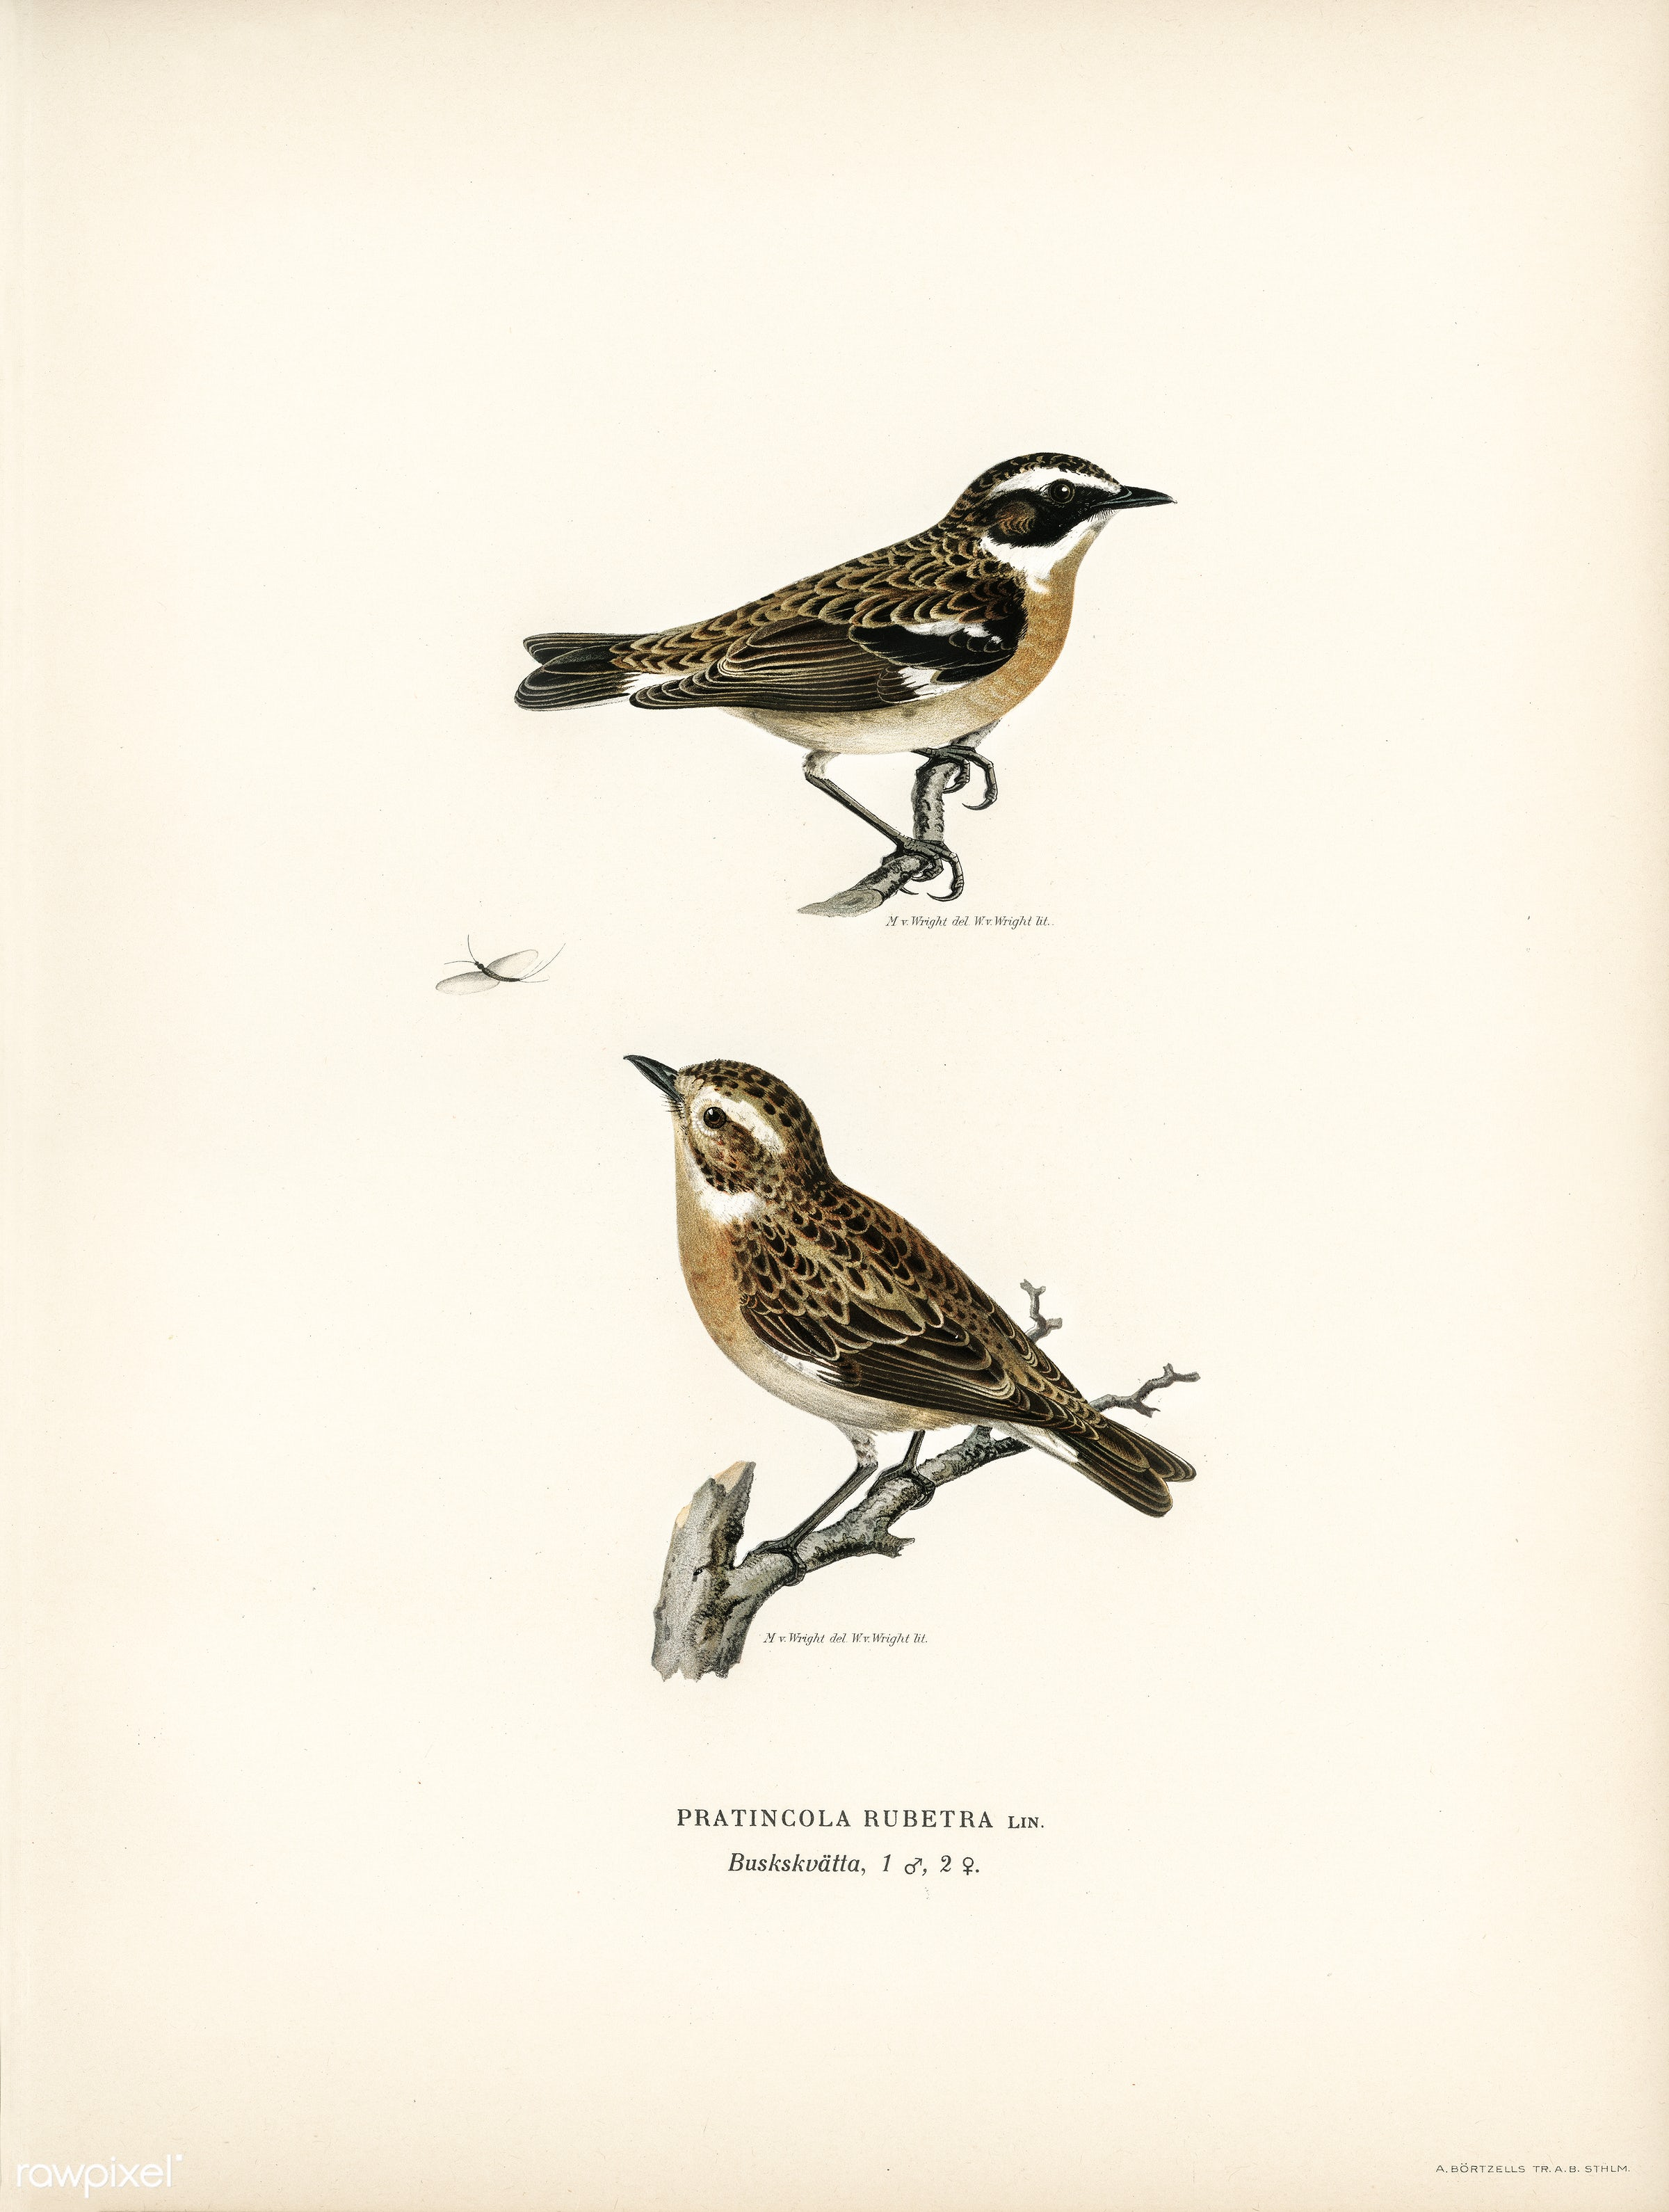 Whinchat 1♀ 2♂ (Pratincola rubetra) illustrated by the von Wright brothers. Digitally enhanced from our own 1929 folio...